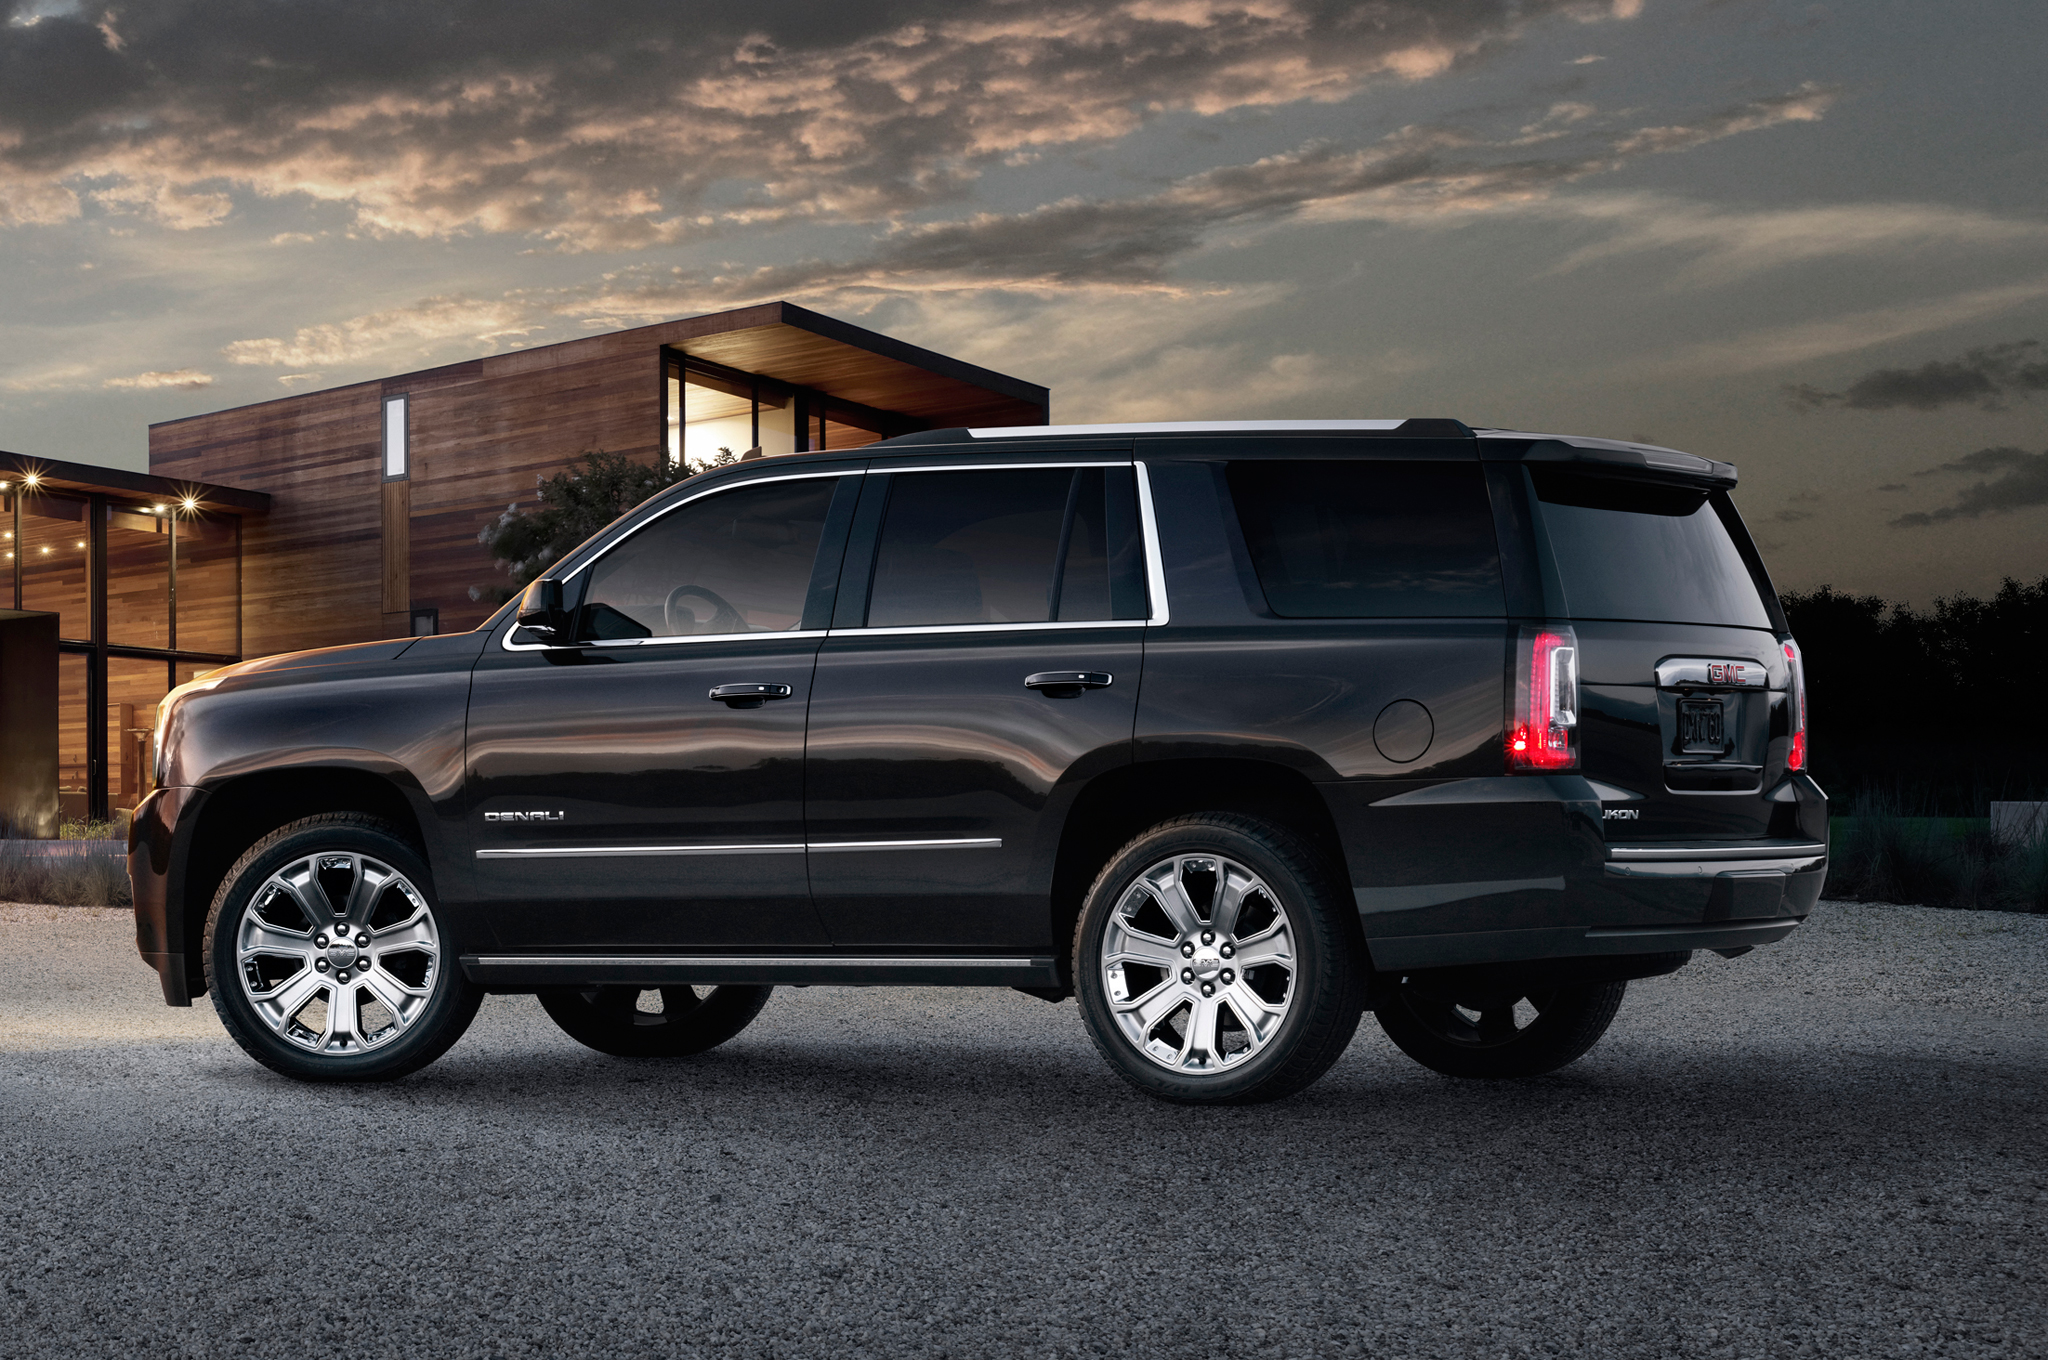 2015 chevrolet tahoe - information and photos - zombiedrive